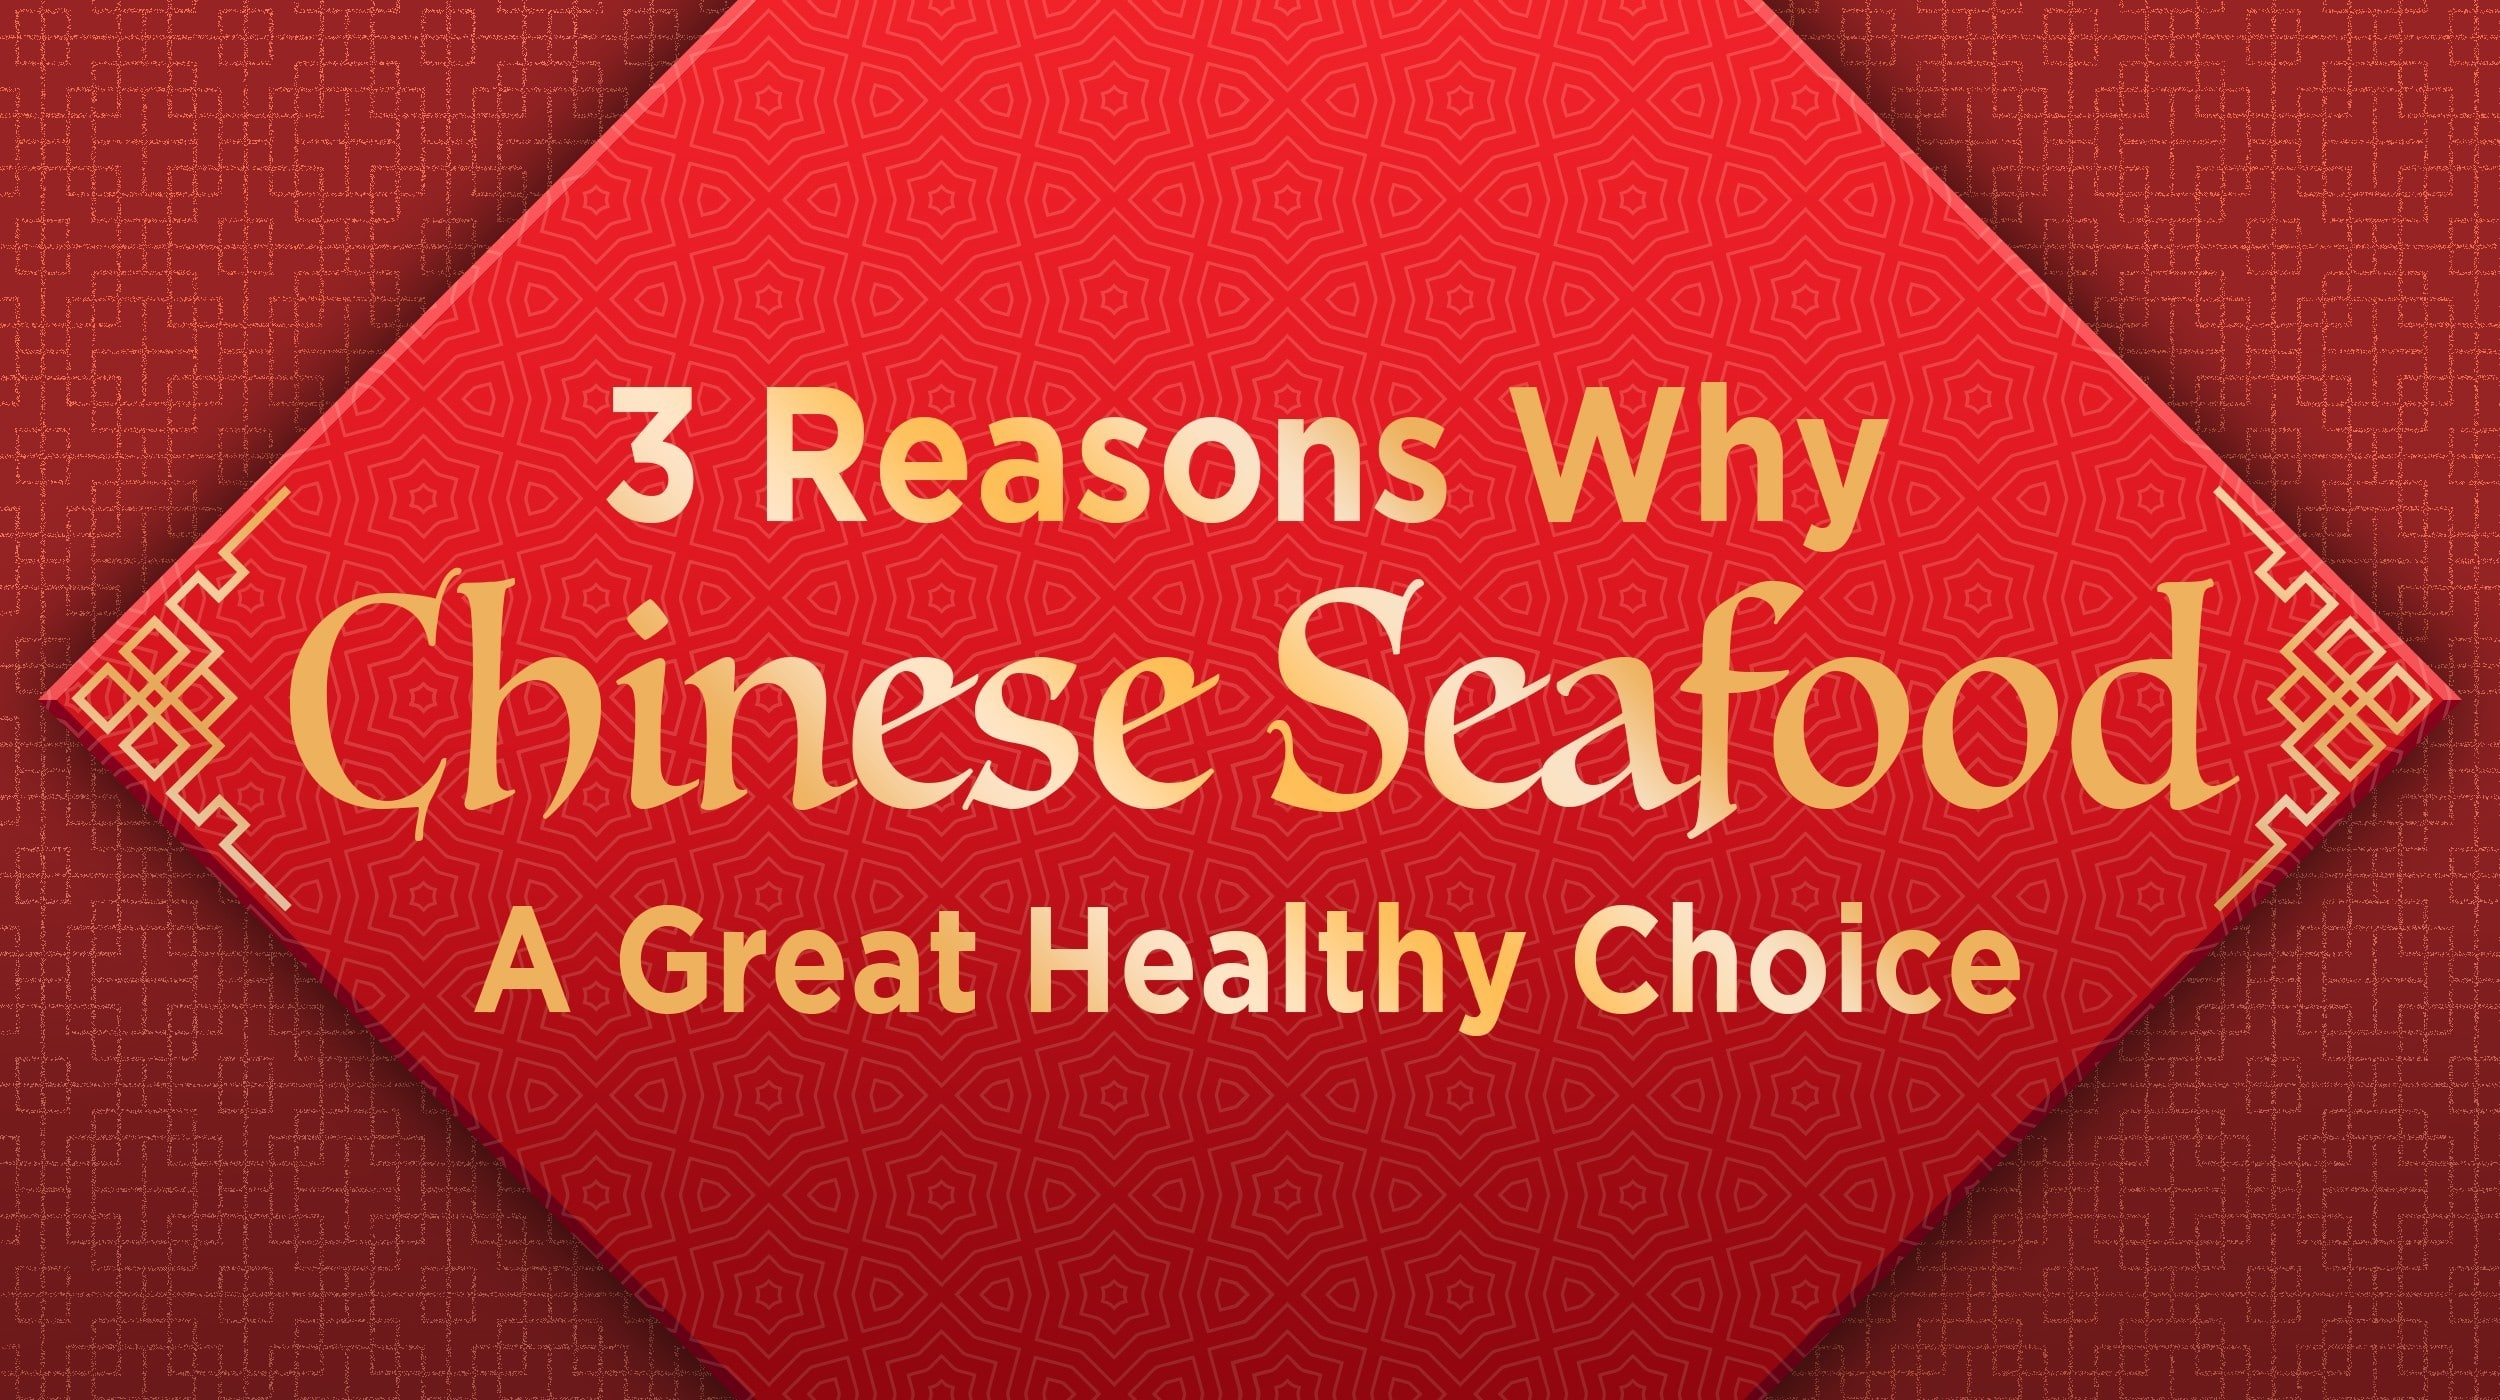 3 reasons why chinese food is a great choice